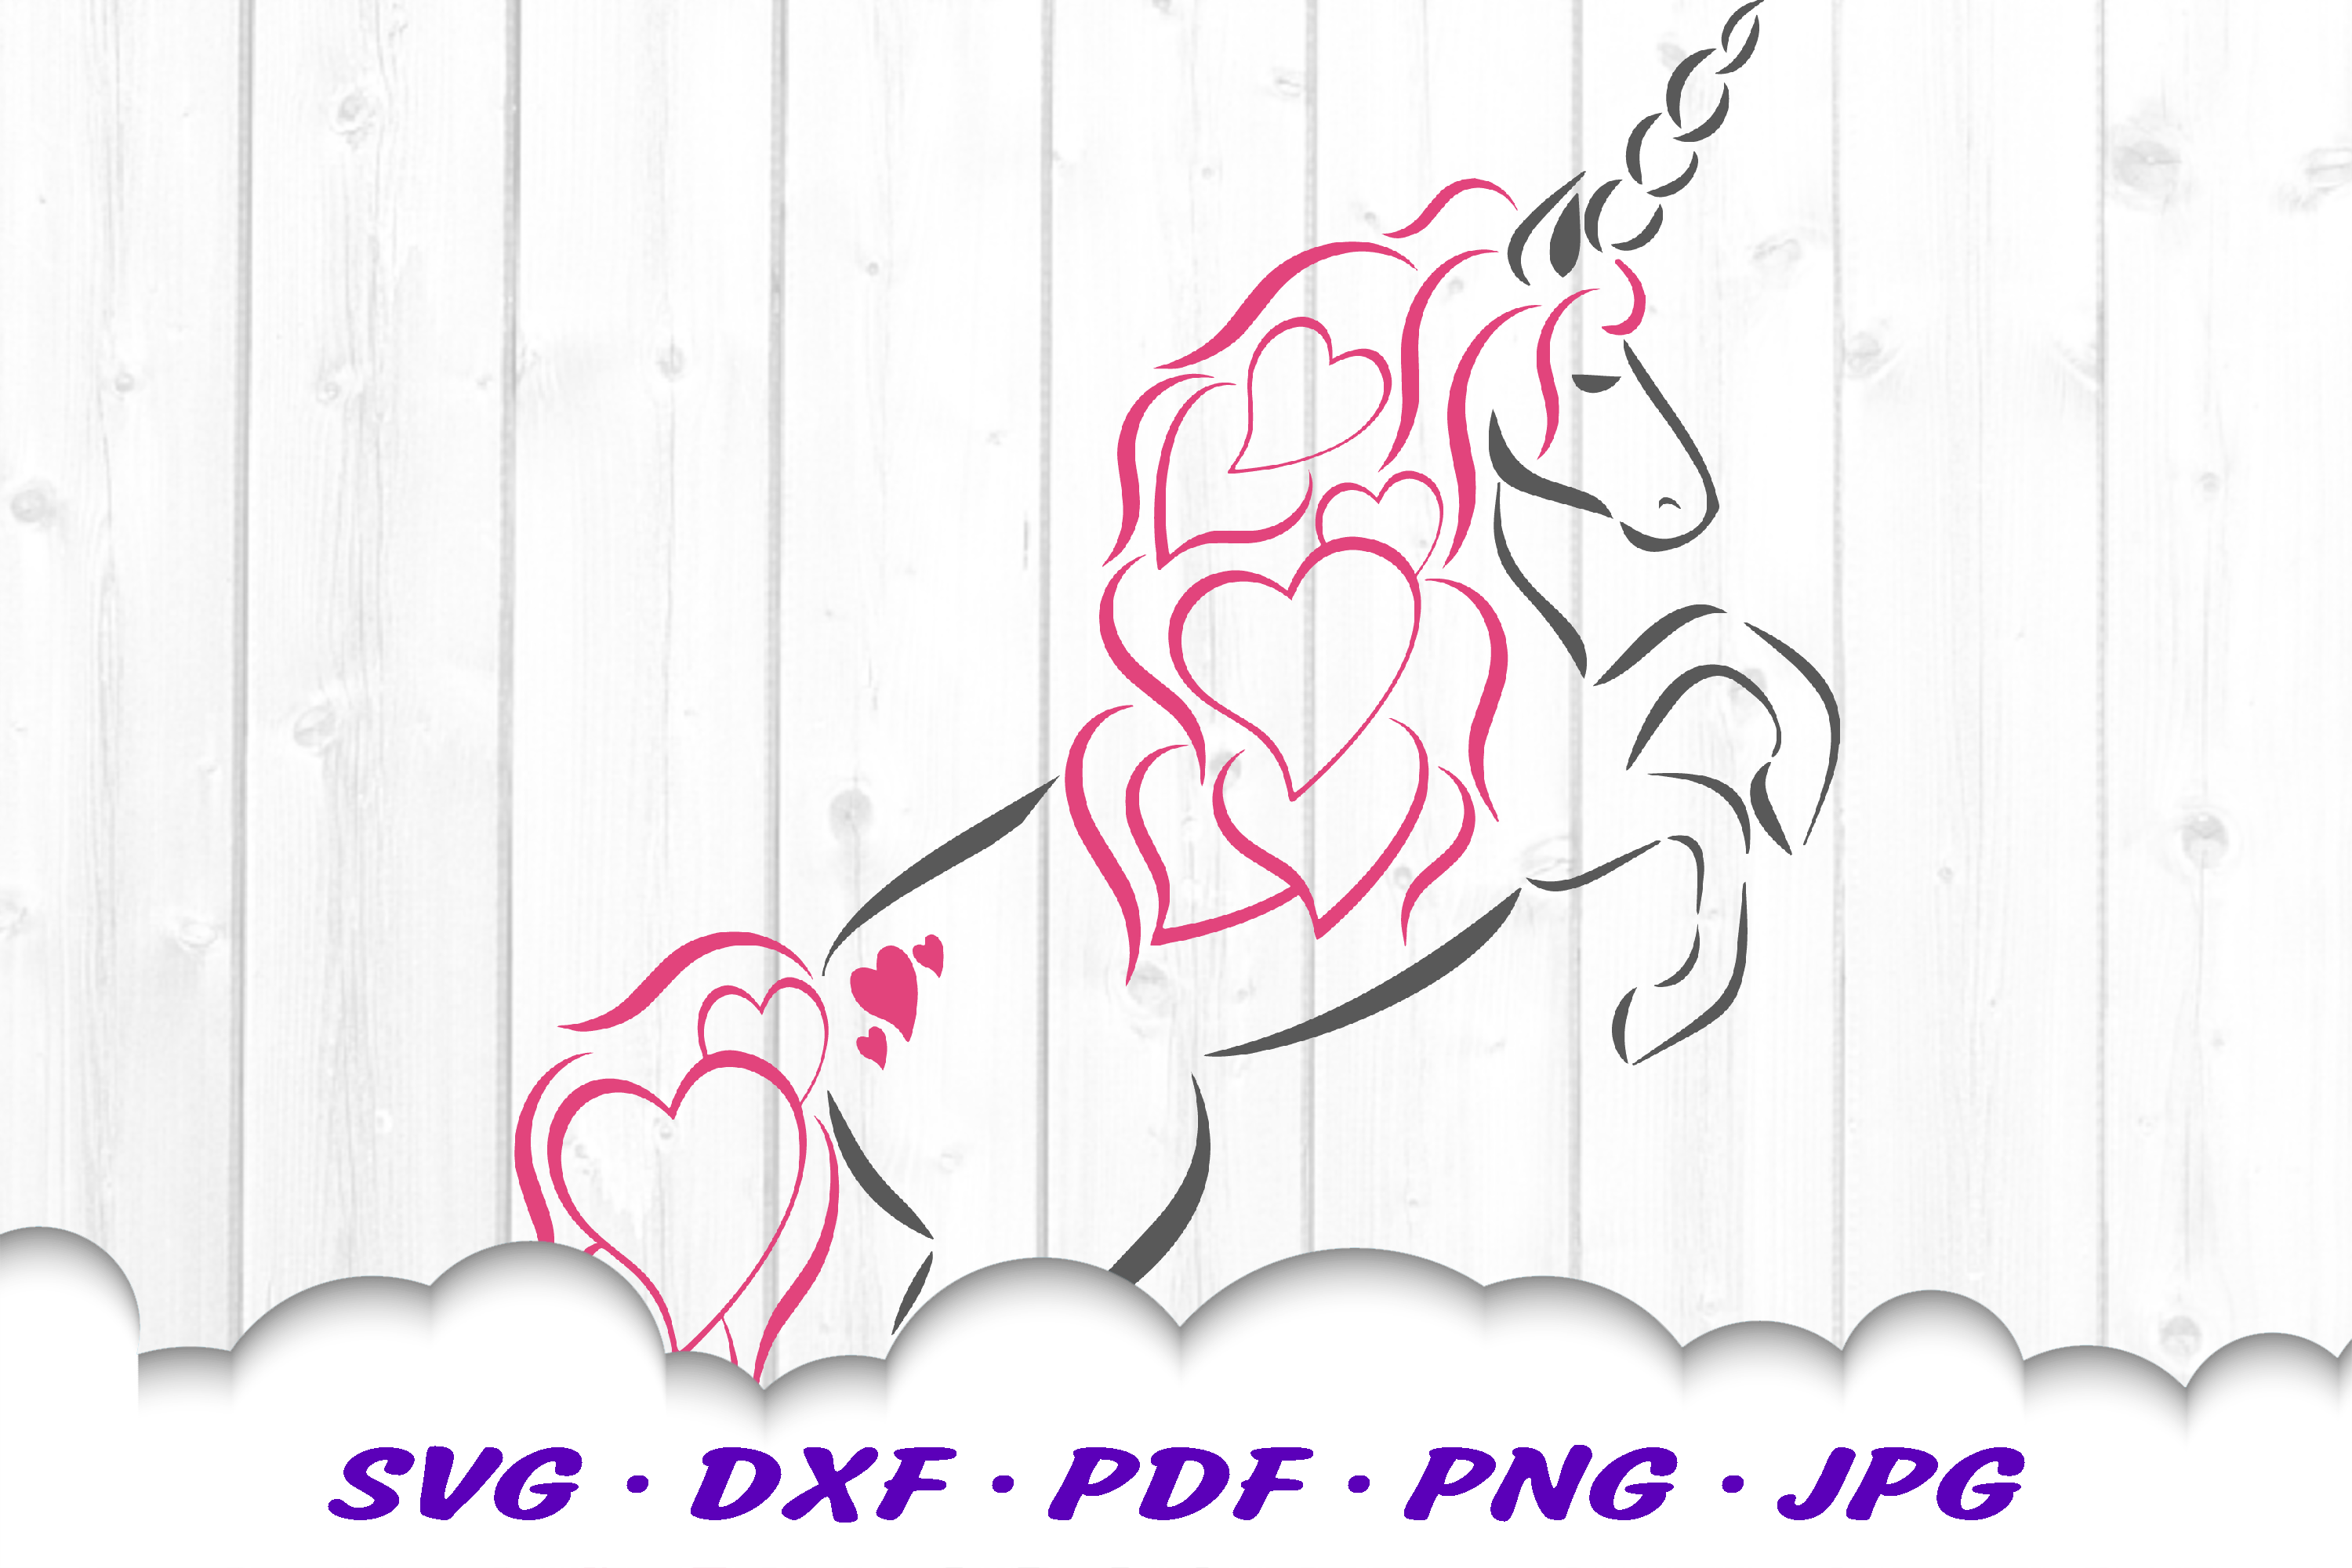 Valentines Unicorn Hearts Svg Dxf Cut Files By Cloud9designsvg